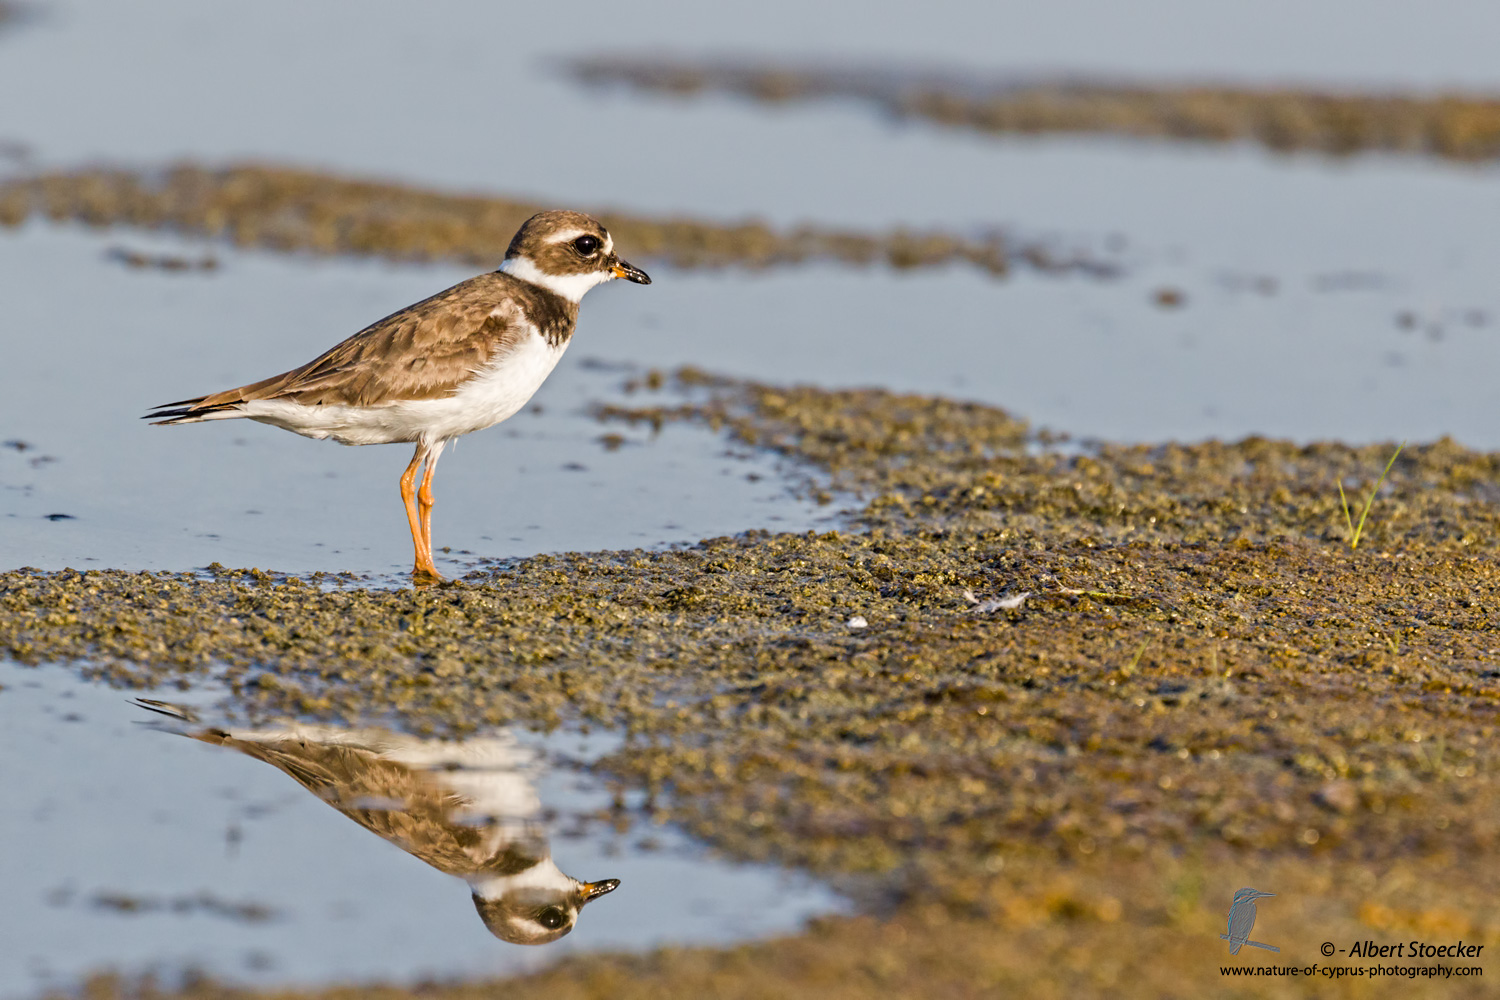 Sandregenpfeiffer, Common Ringed Plover, Charadrius hiaticula, Cyprus, Akrotiri Salt Lake, September 2017